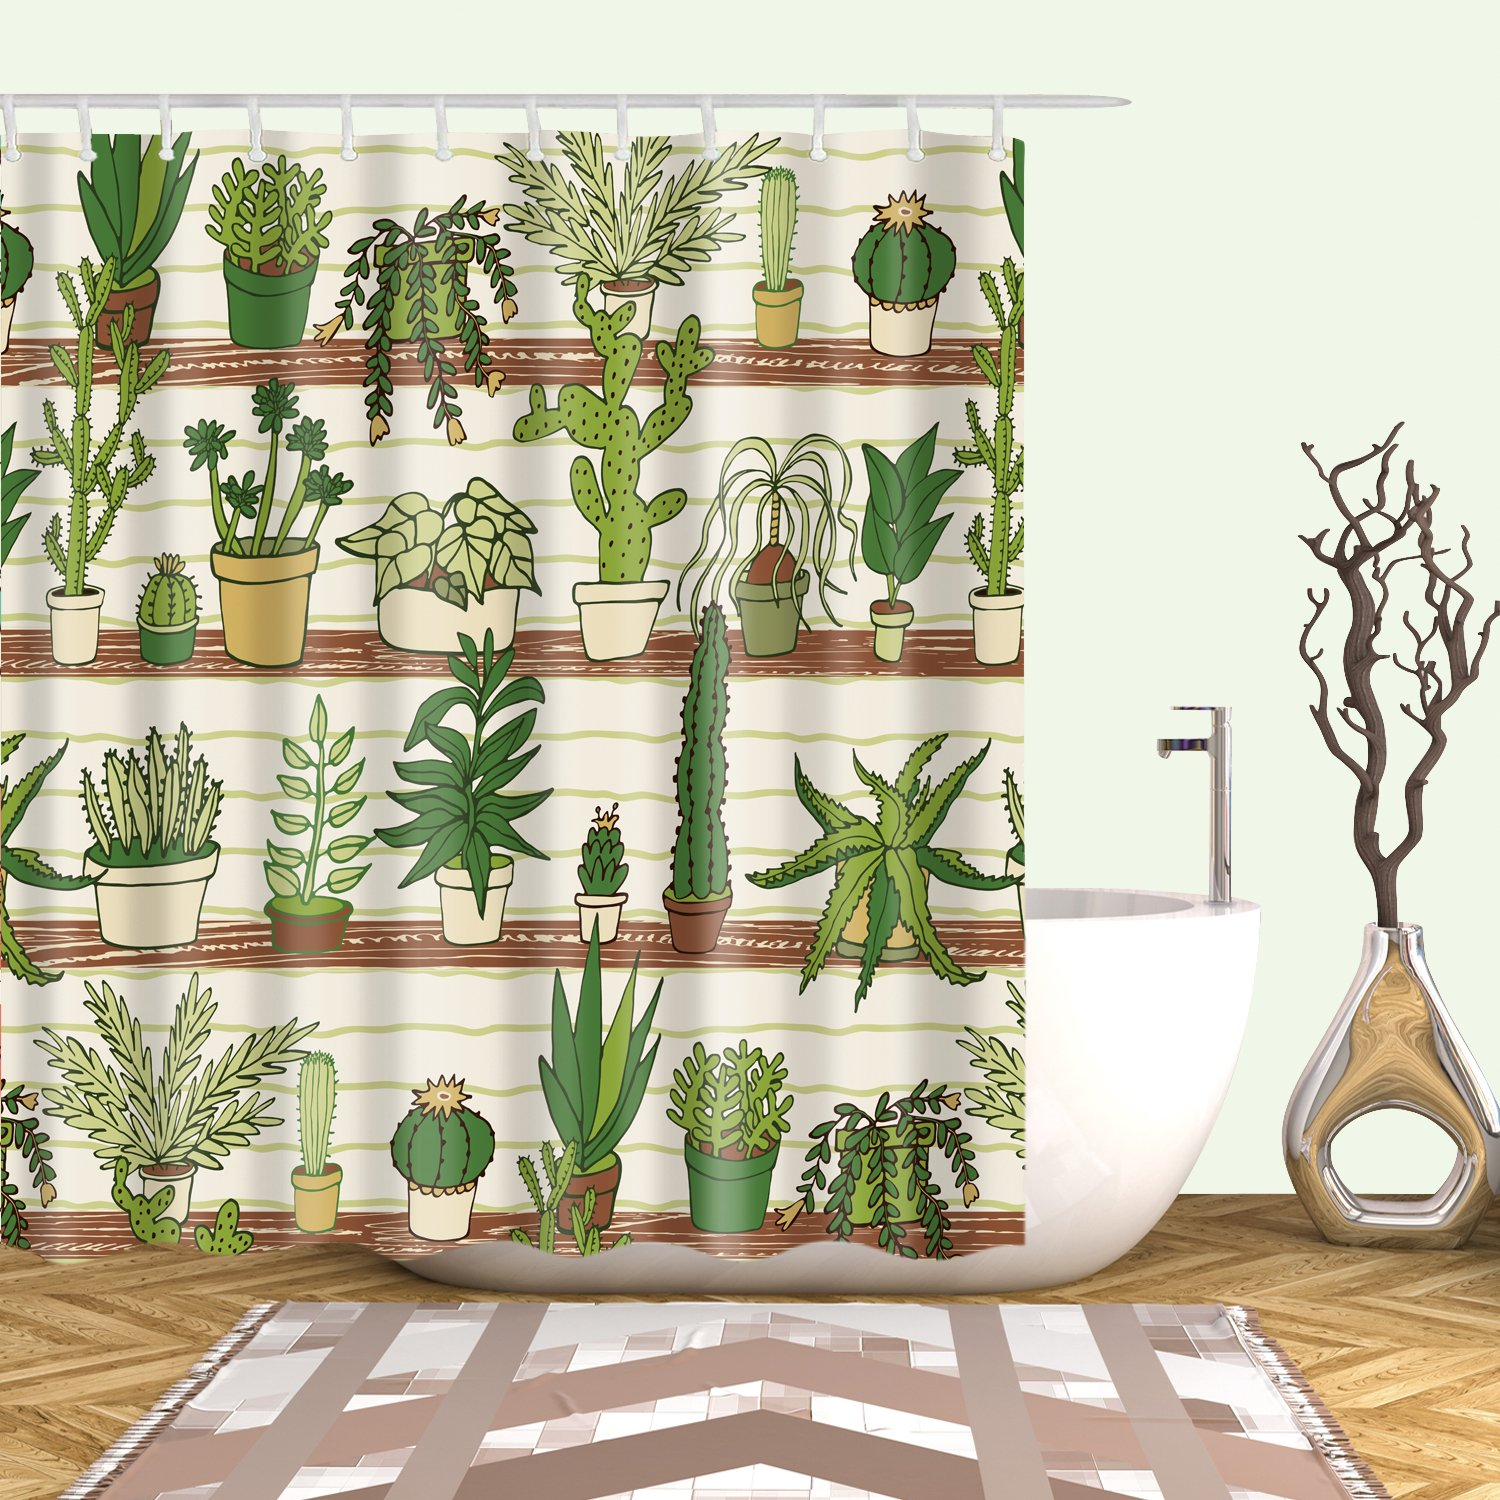 Houseplant Display Cactus Botanical Green Plant Shower Curtain